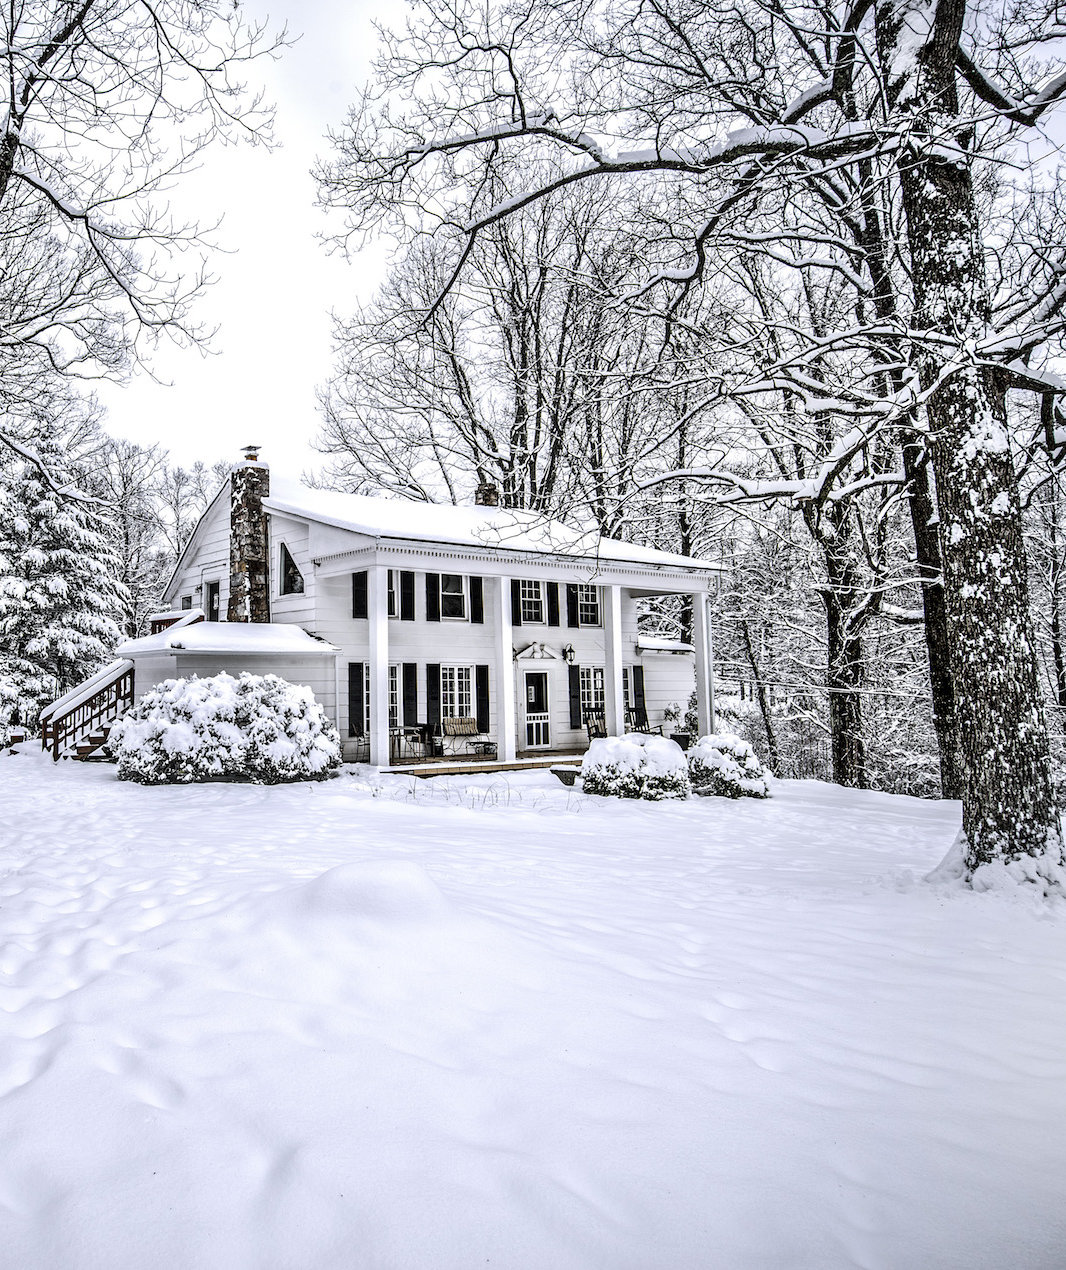 This Is How Cold and Snowy This Winter Will Be, According to the Farmers' Almanac